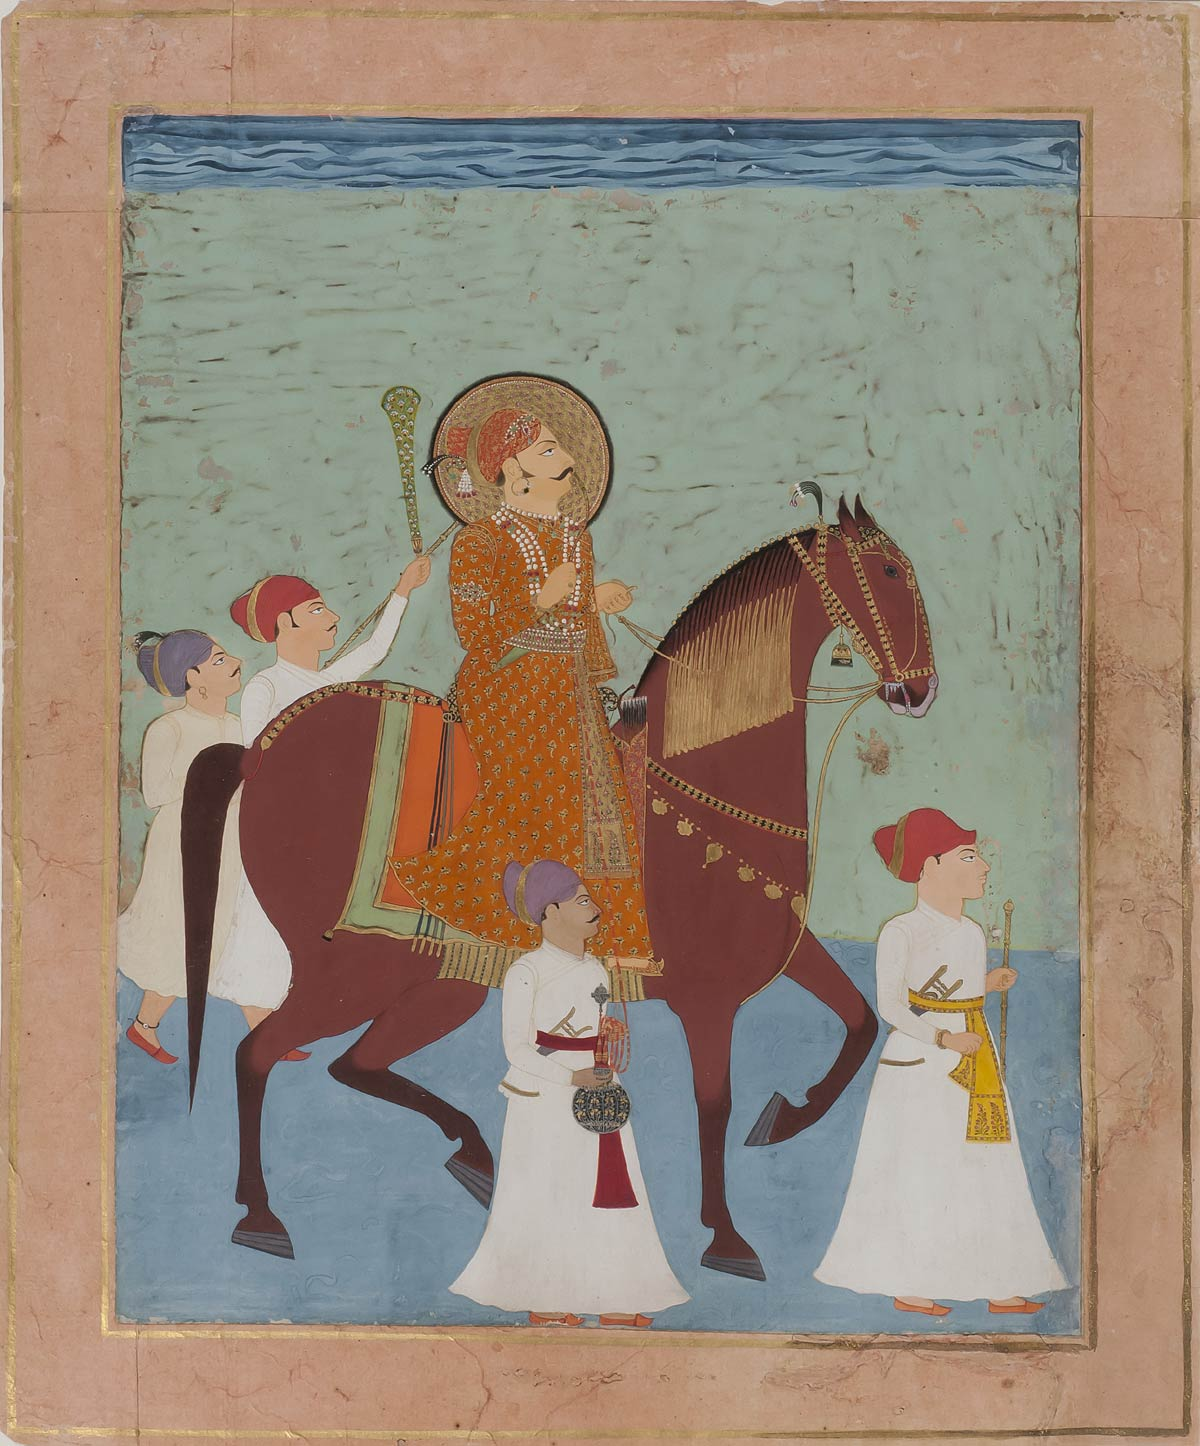 Horseback Portrait of Prince Lakhpatji of Kutch, Nagaur or Jodhpuri artist, 25 x 32 x cms, Folio: 32 cms, Height: 38 cms